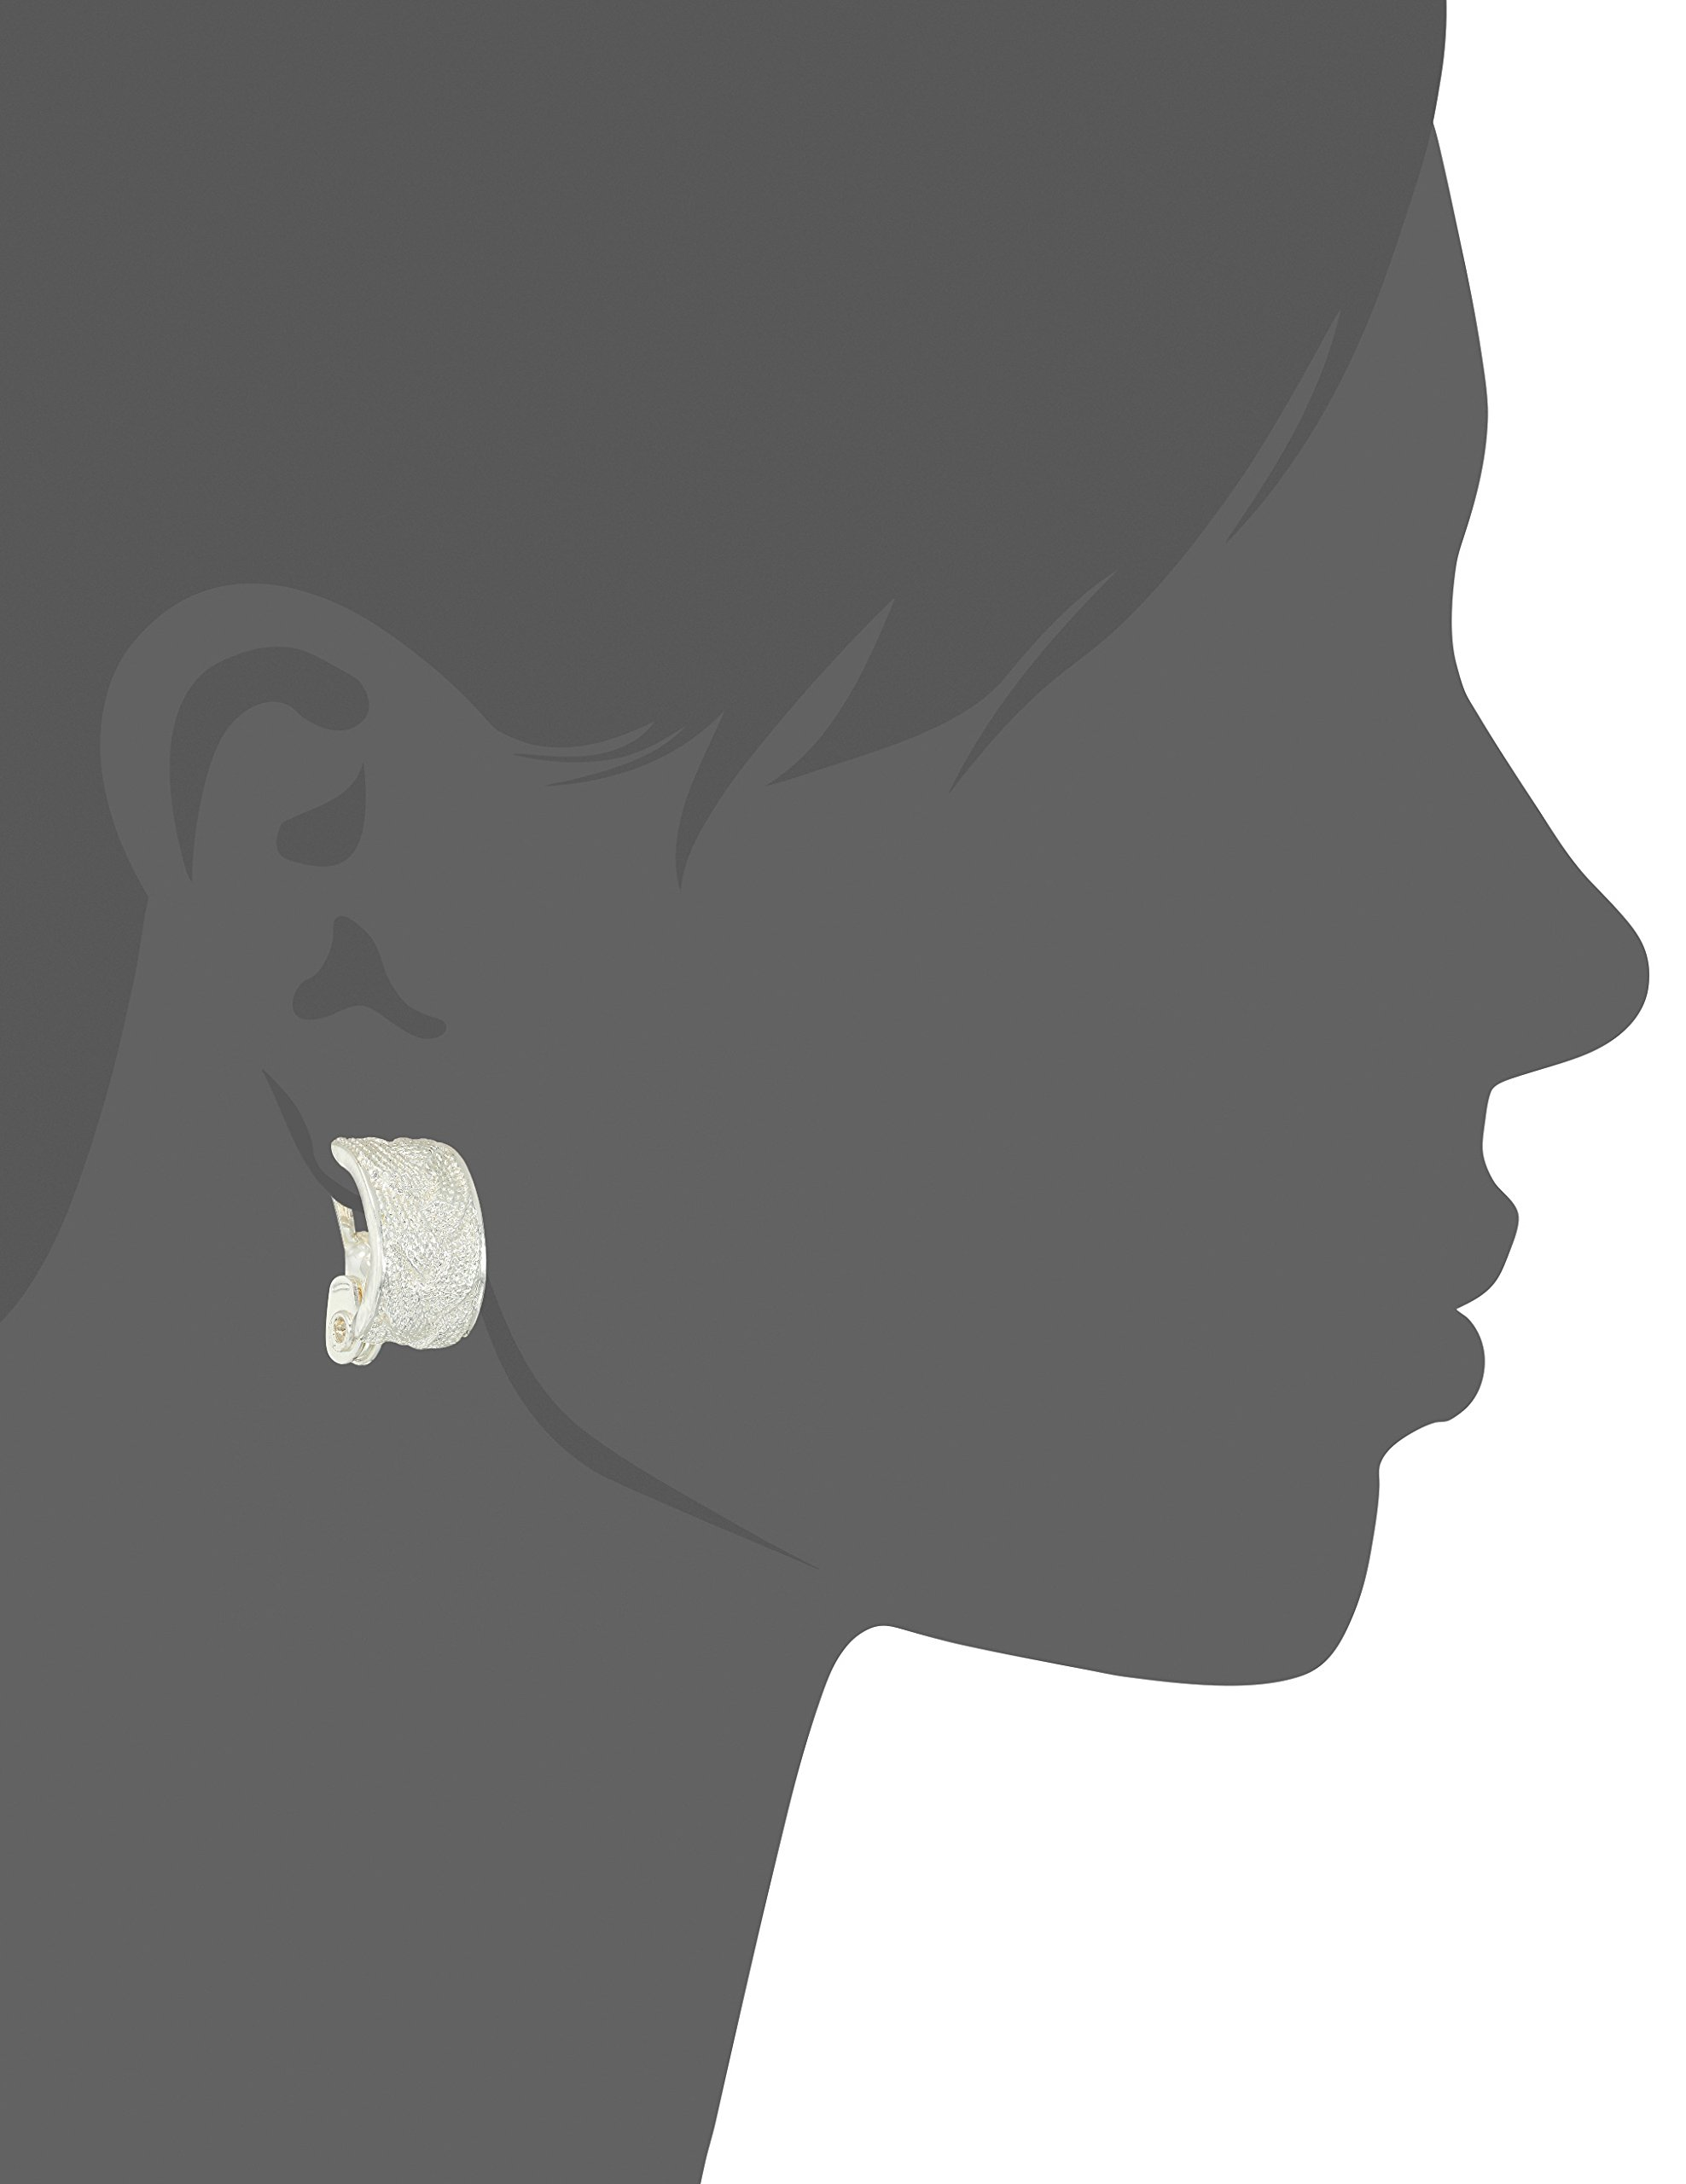 Napier Silver Tone Hoop Clip On Earrings by Napier (Image #2)